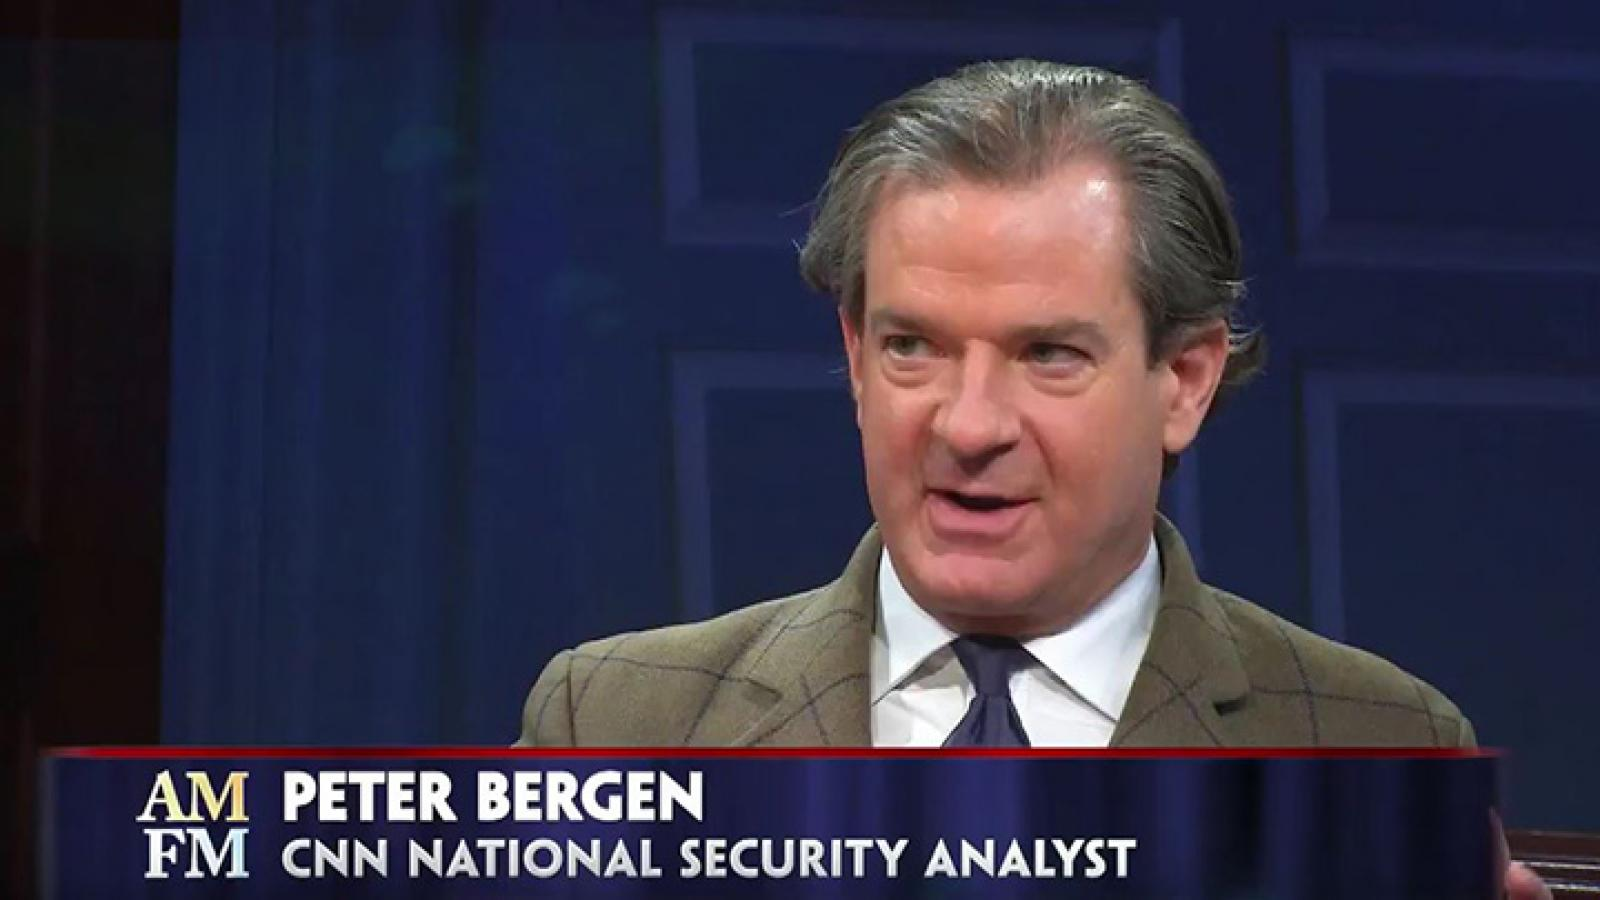 CNN's Peter Bergen looks at the terrorist group ISIS